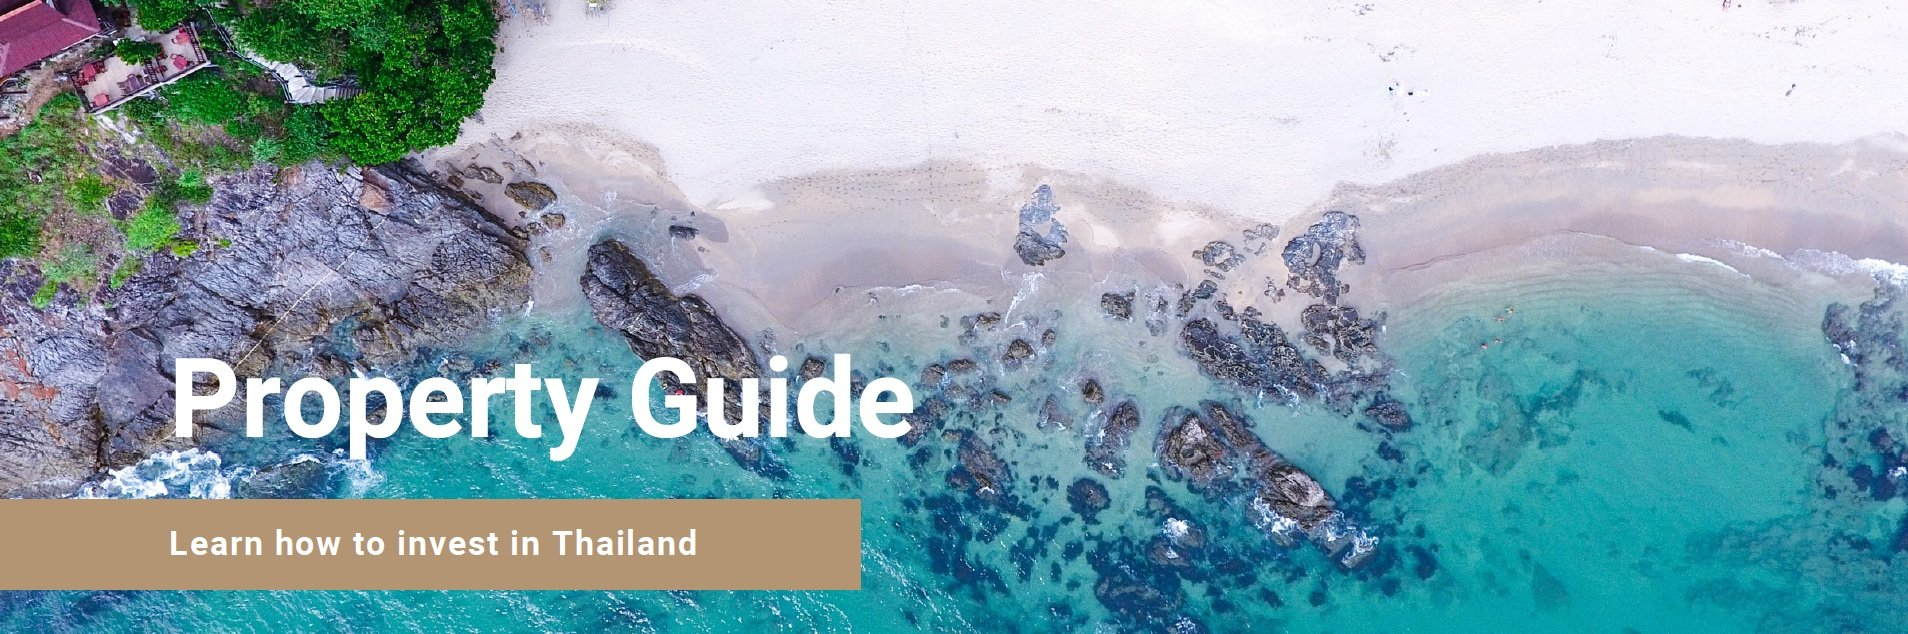 thailand property guide